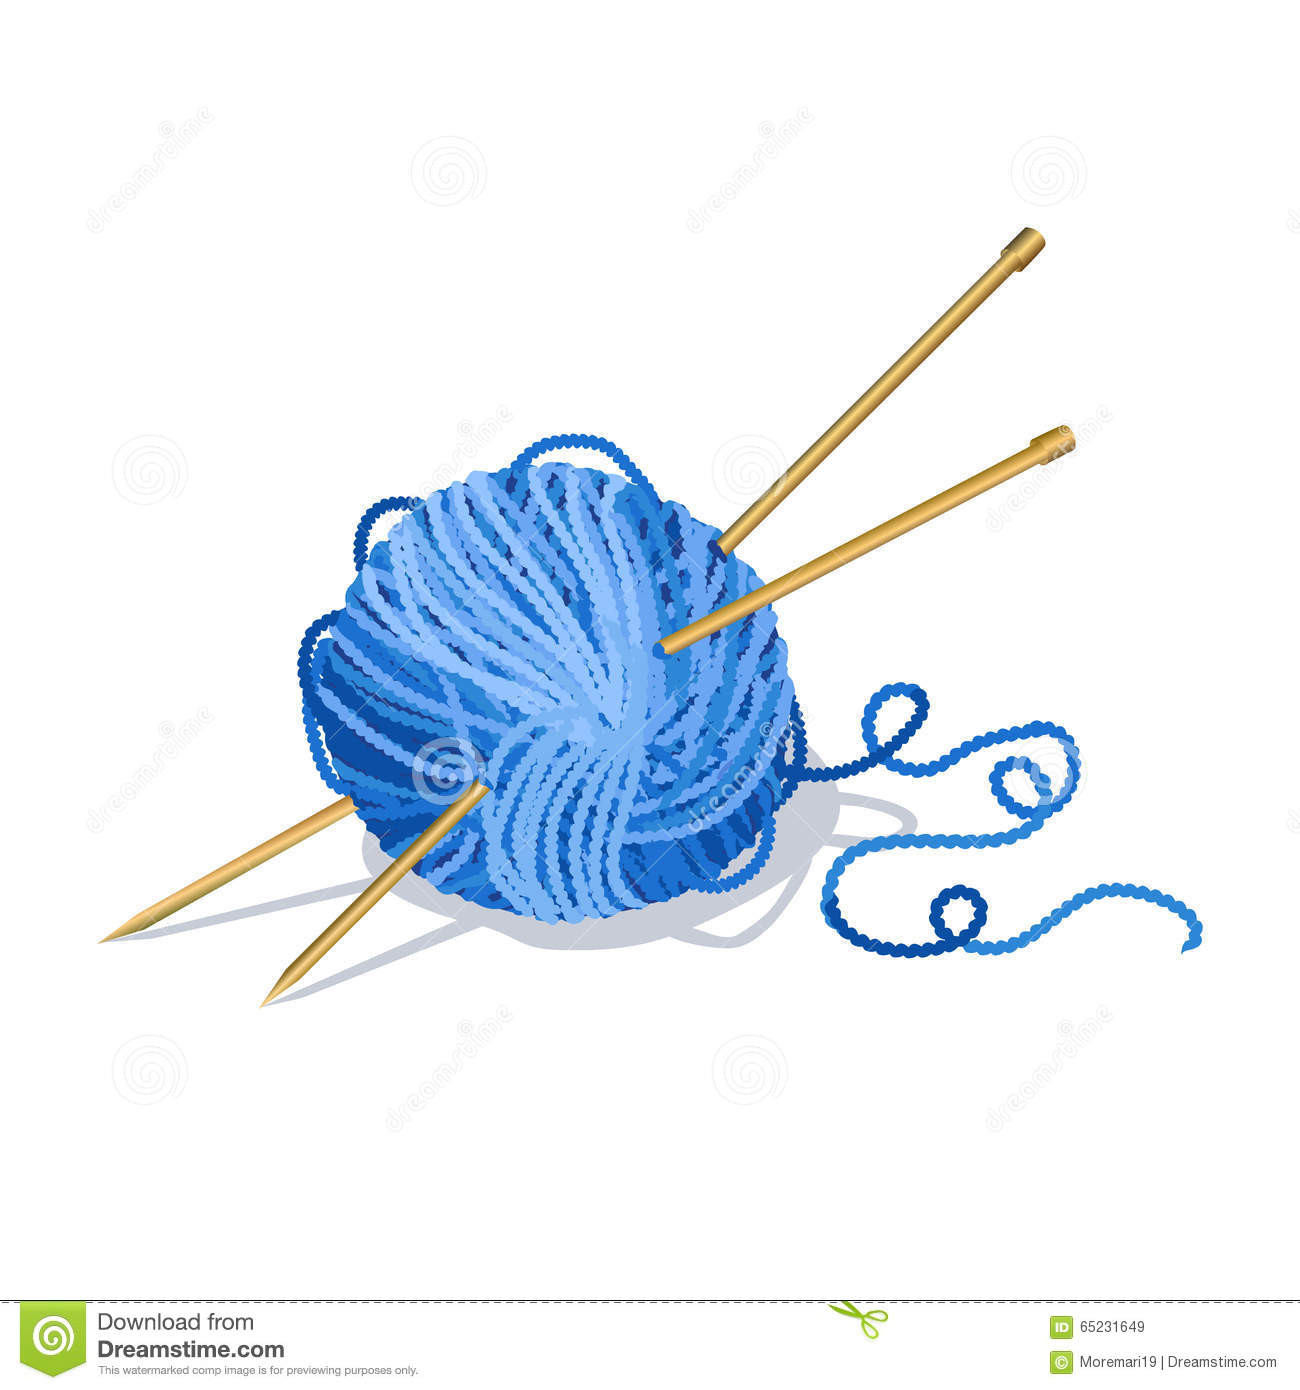 Cartoon Knitting Needles : Yarn ball and needles icon vector illustration